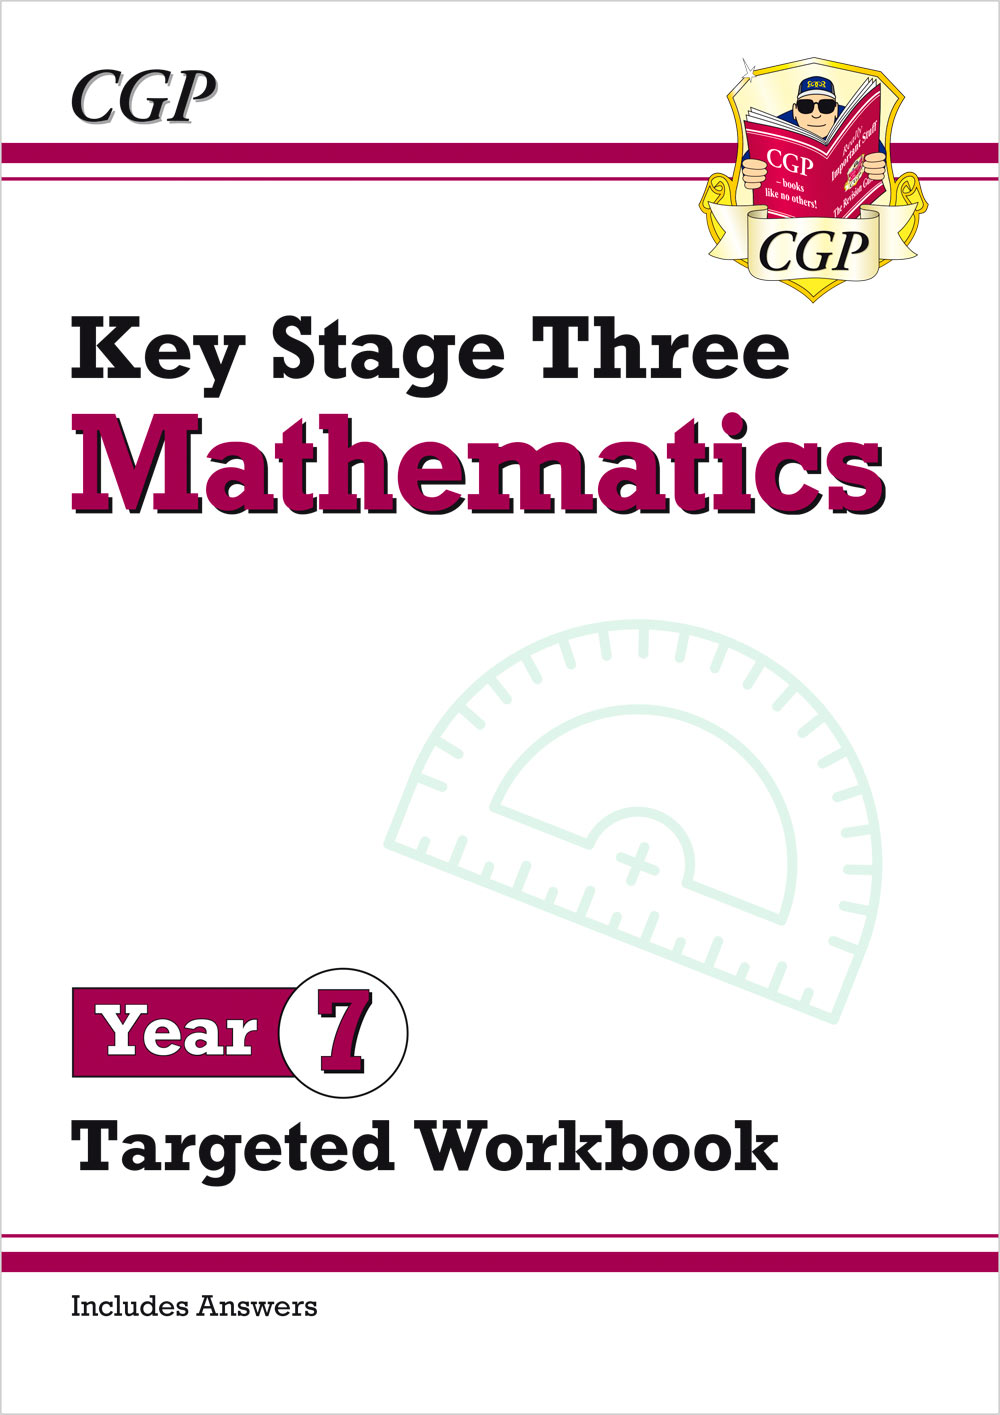 M7W32 - KS3 Maths Year 7 Targeted Workbook (with answers)